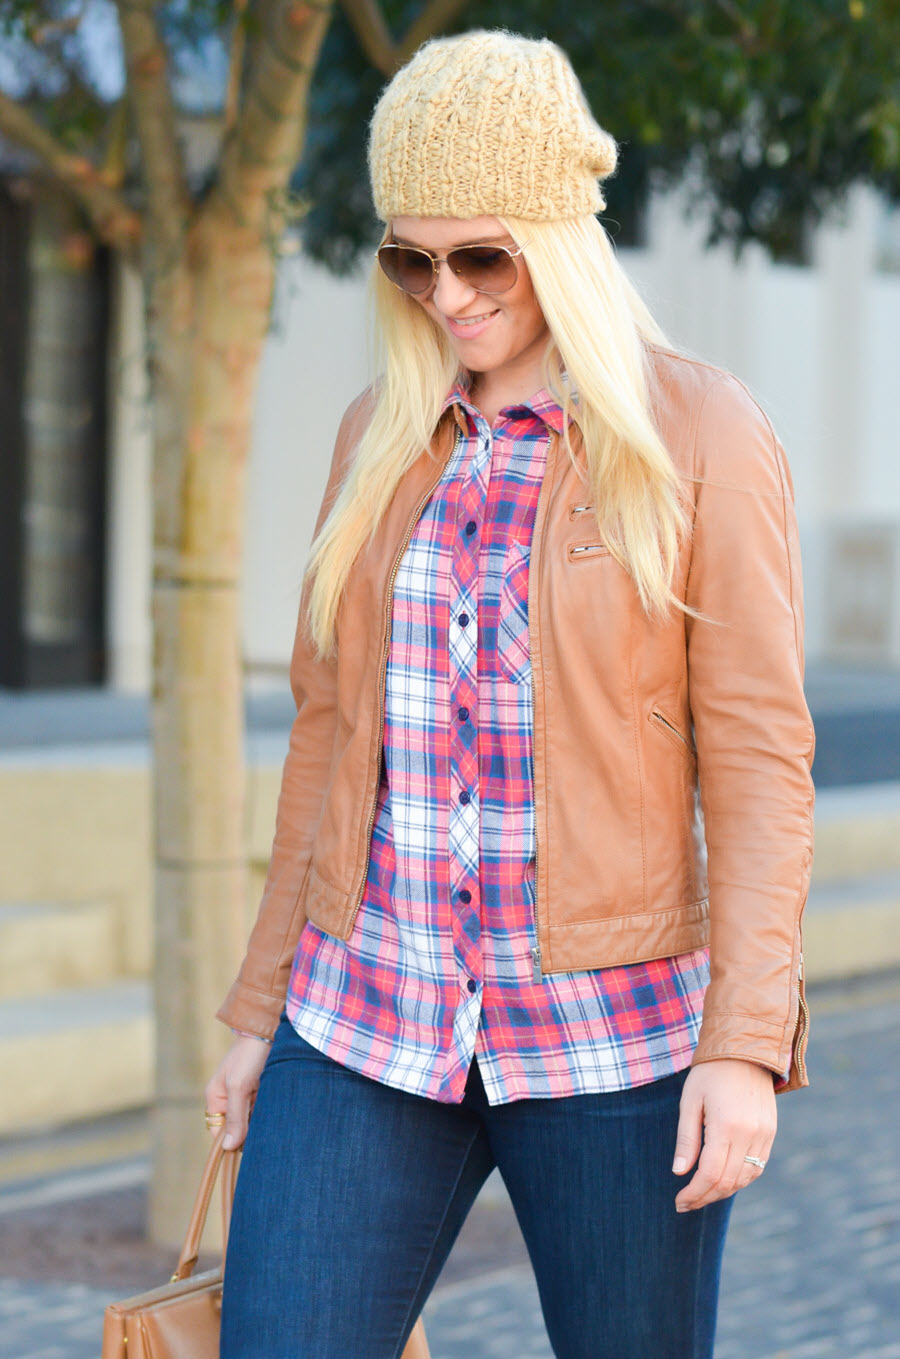 How to Wear Tan Leather Jacket Outfit w. Flannel